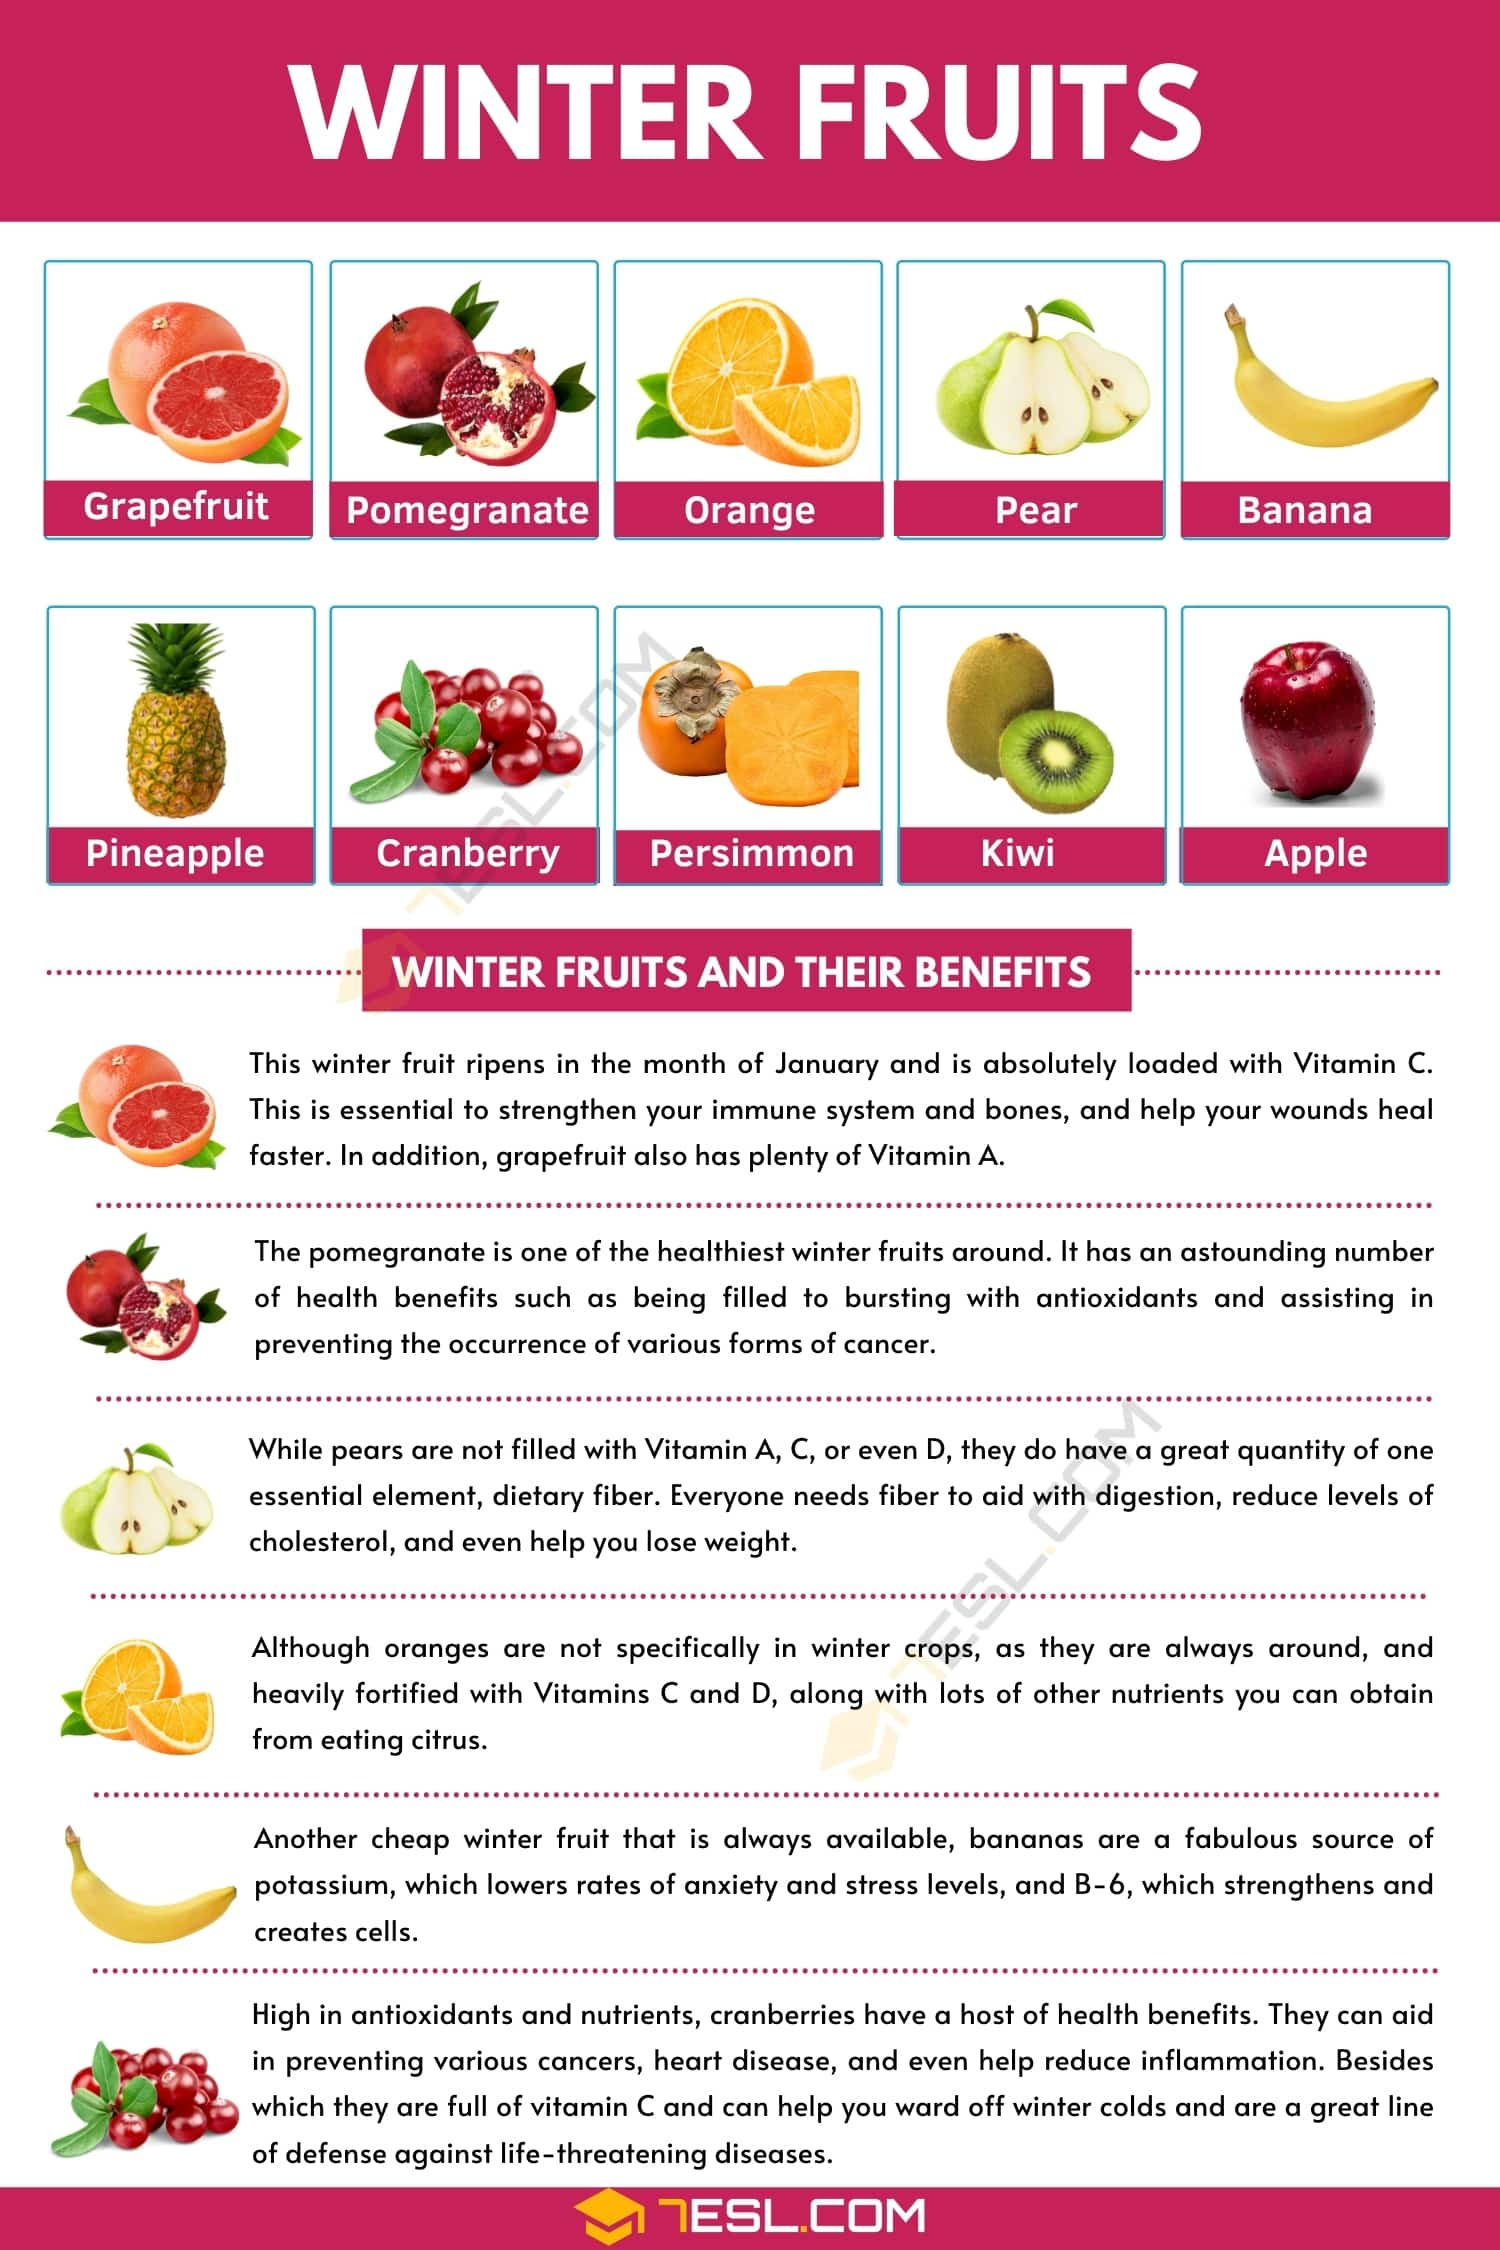 Winter Fruits | List of Winter Fruits and Their Awesome Benefits